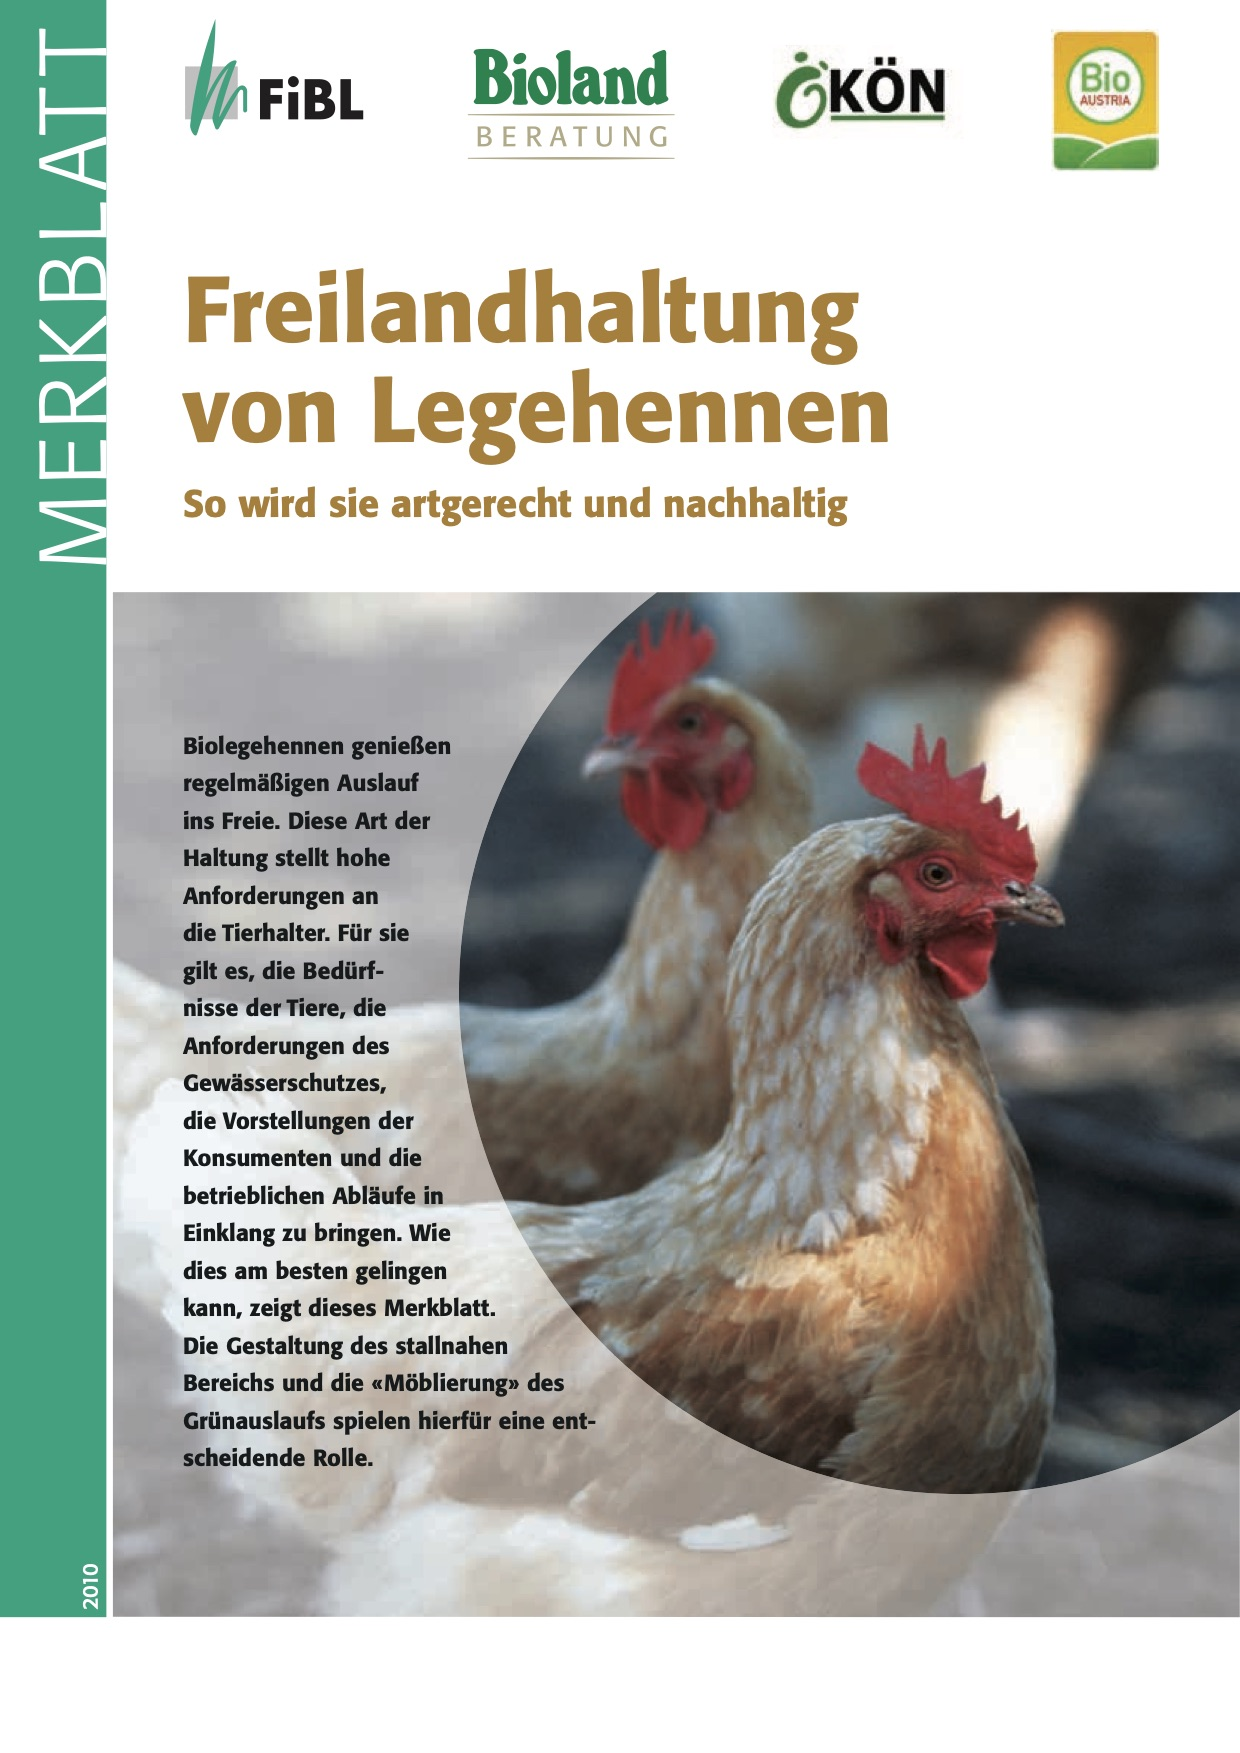 Free-range laying hens: providing species-appropriate and sustainable husbandry